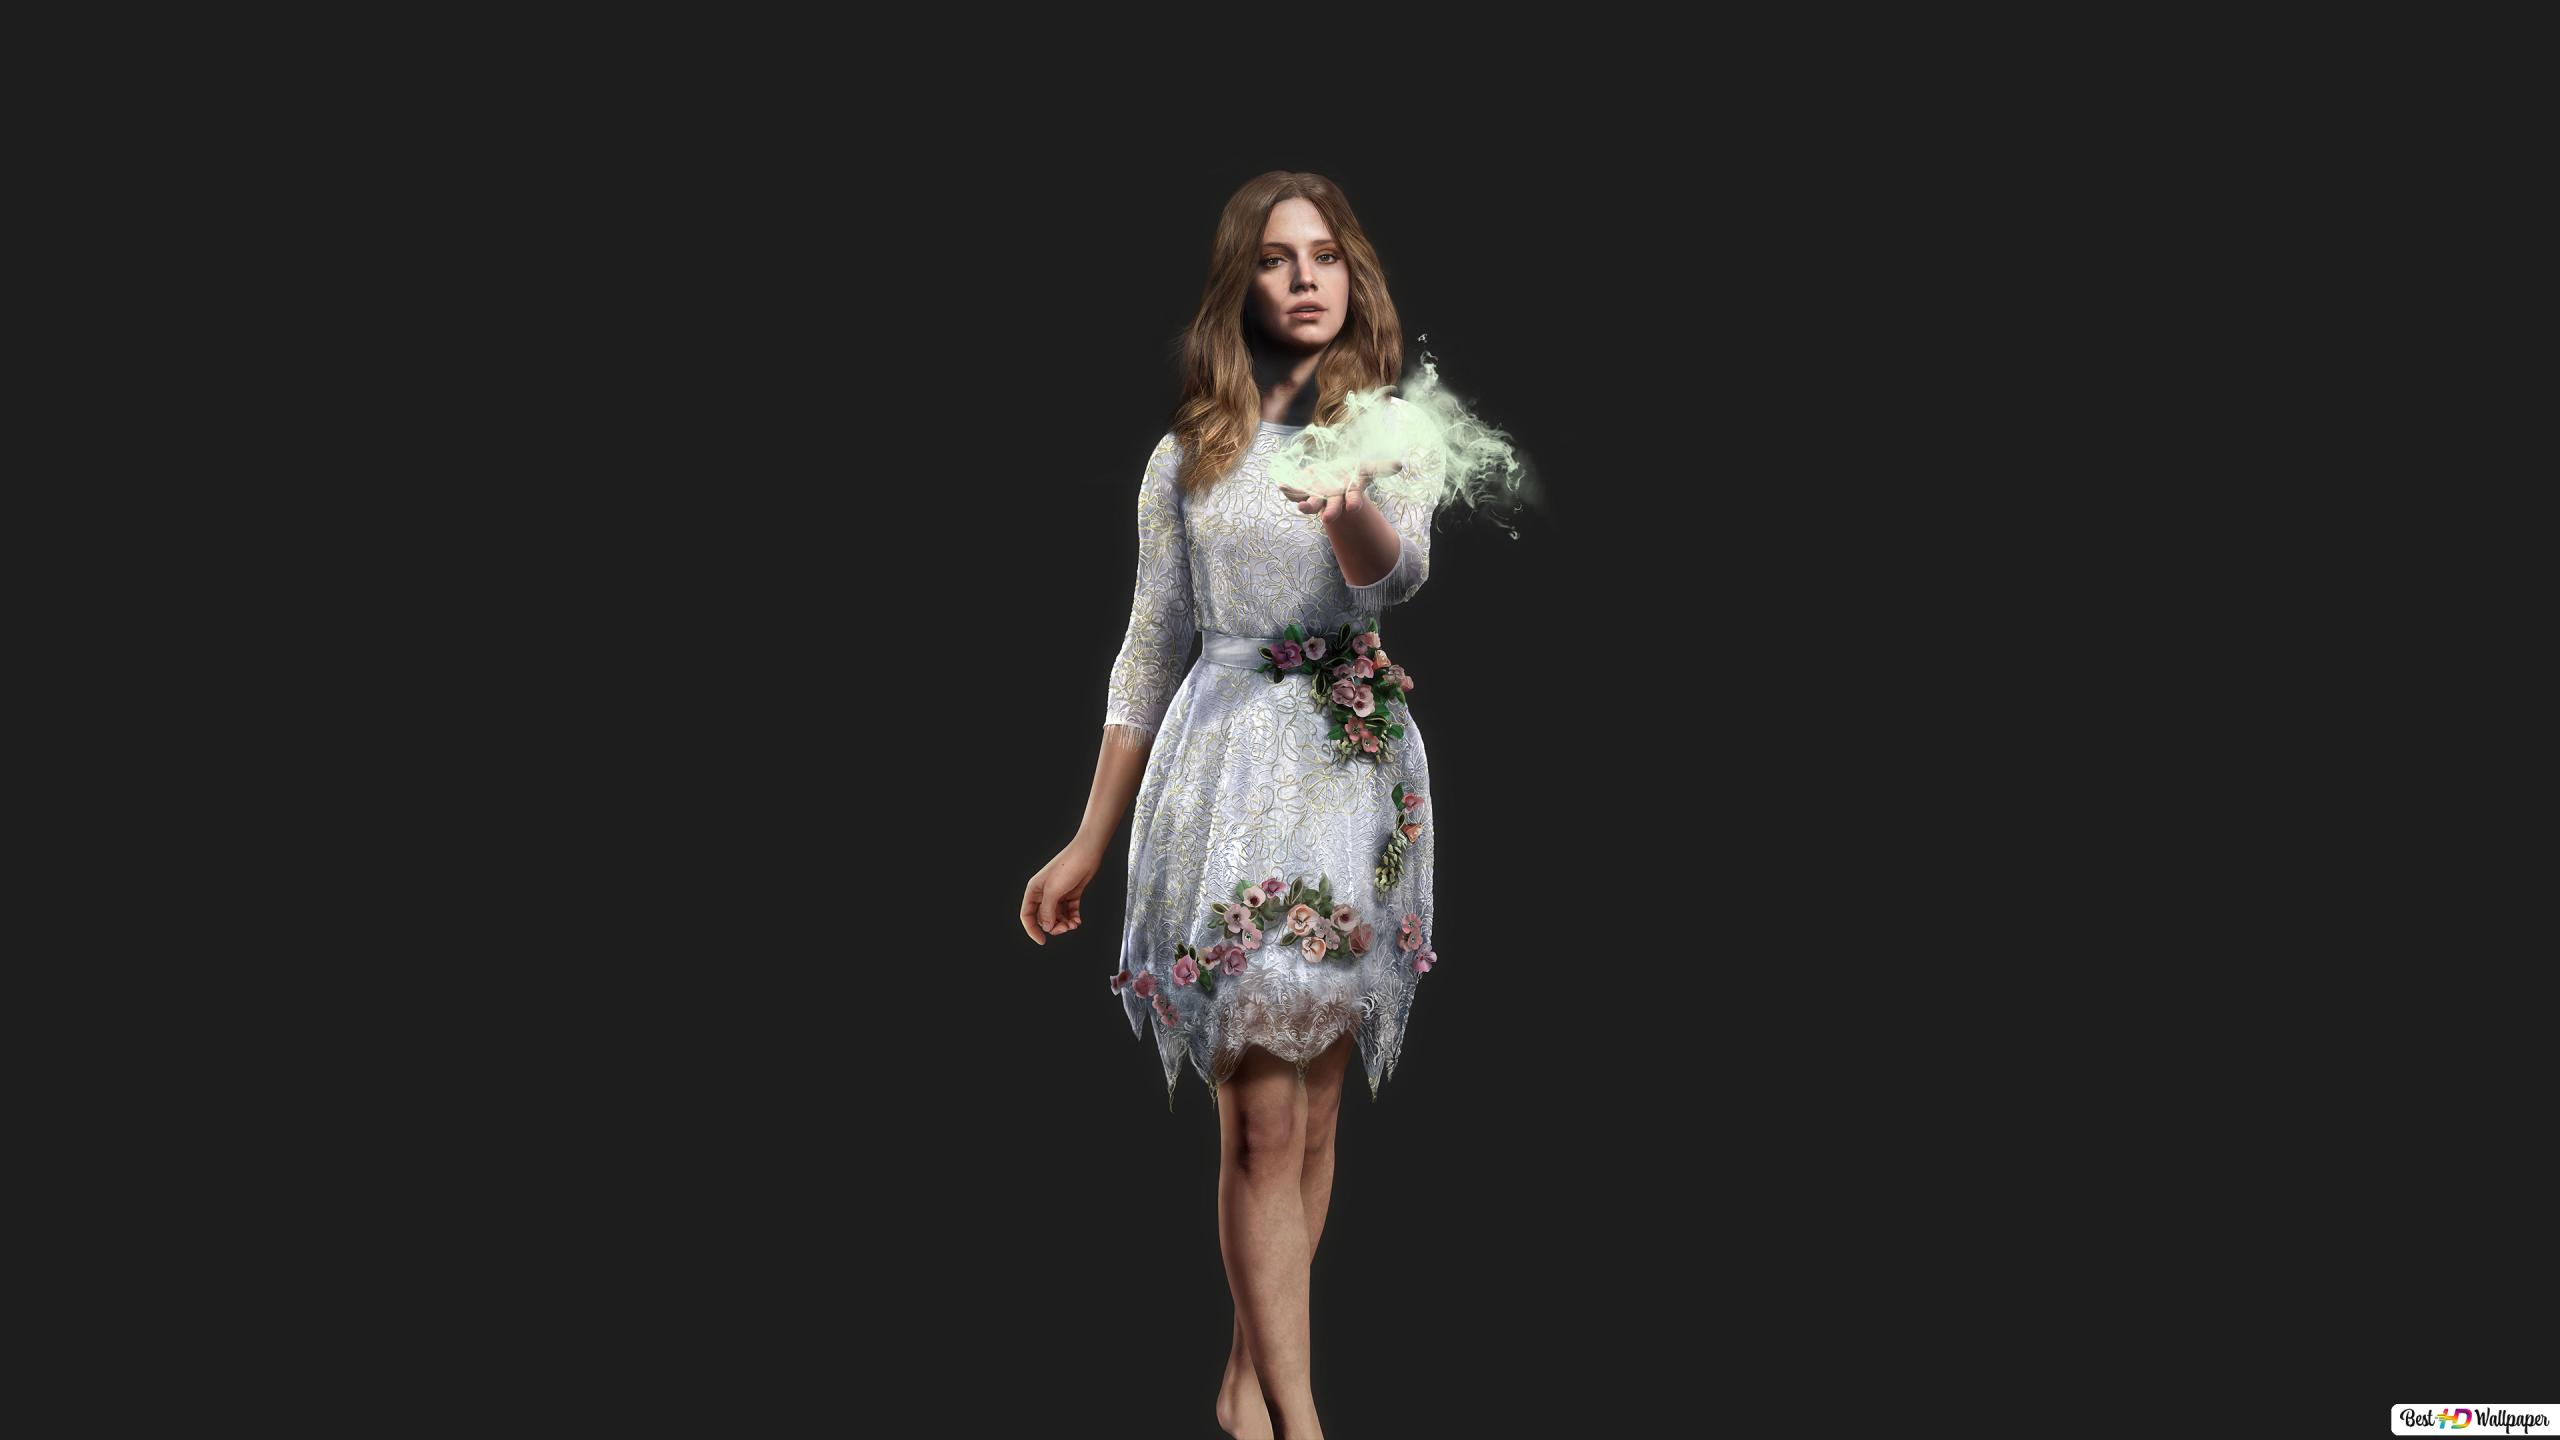 Far Cry 5 Game Faith Seed Hd Wallpaper Download